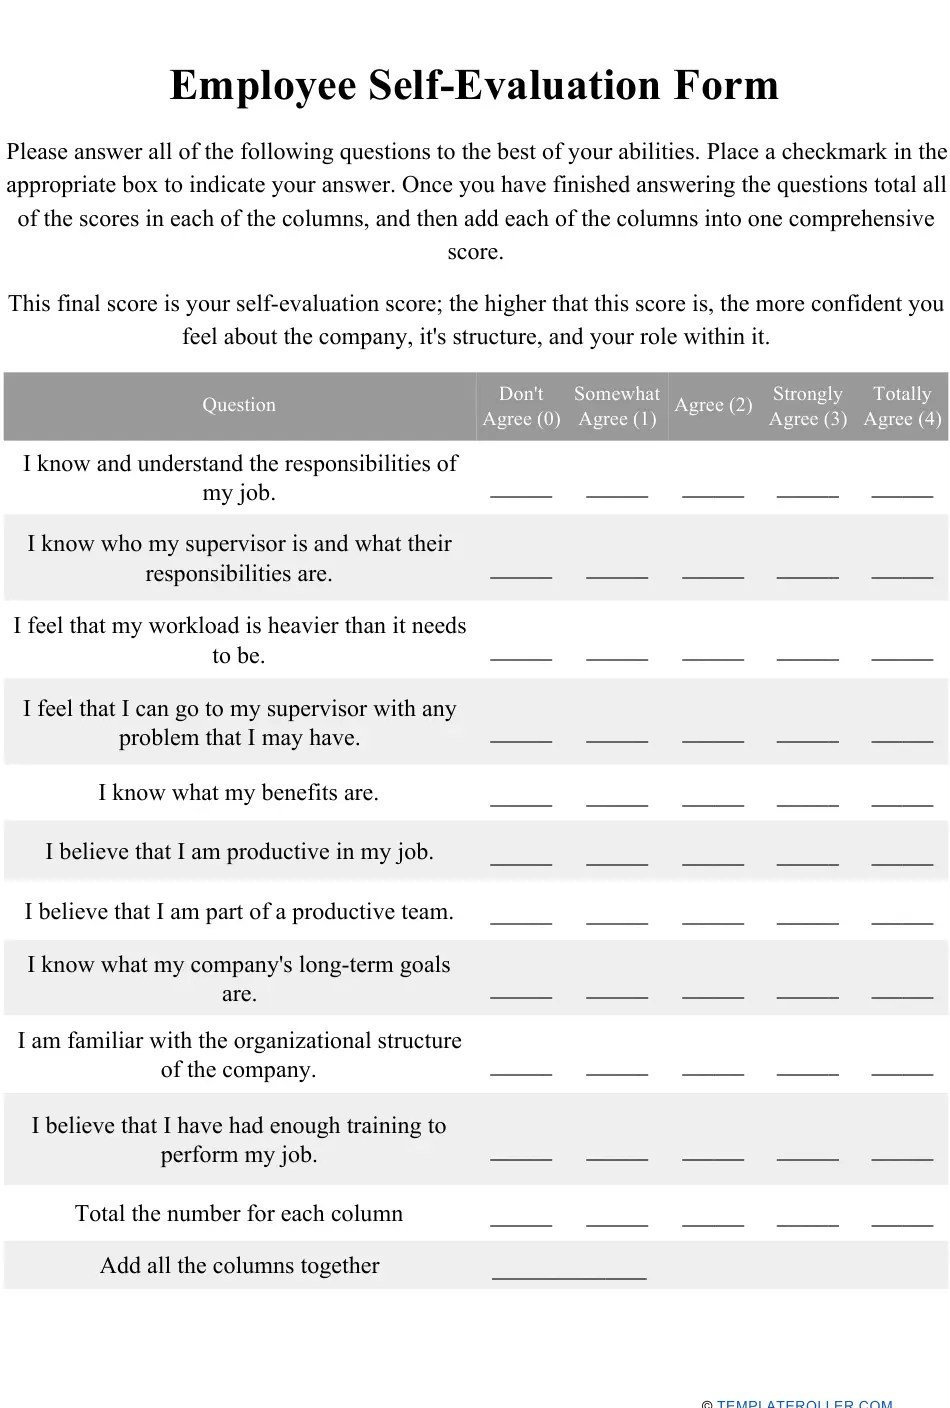 The template is short, but be warned: Employee Self Evaluation Form Download Printable Pdf Templateroller